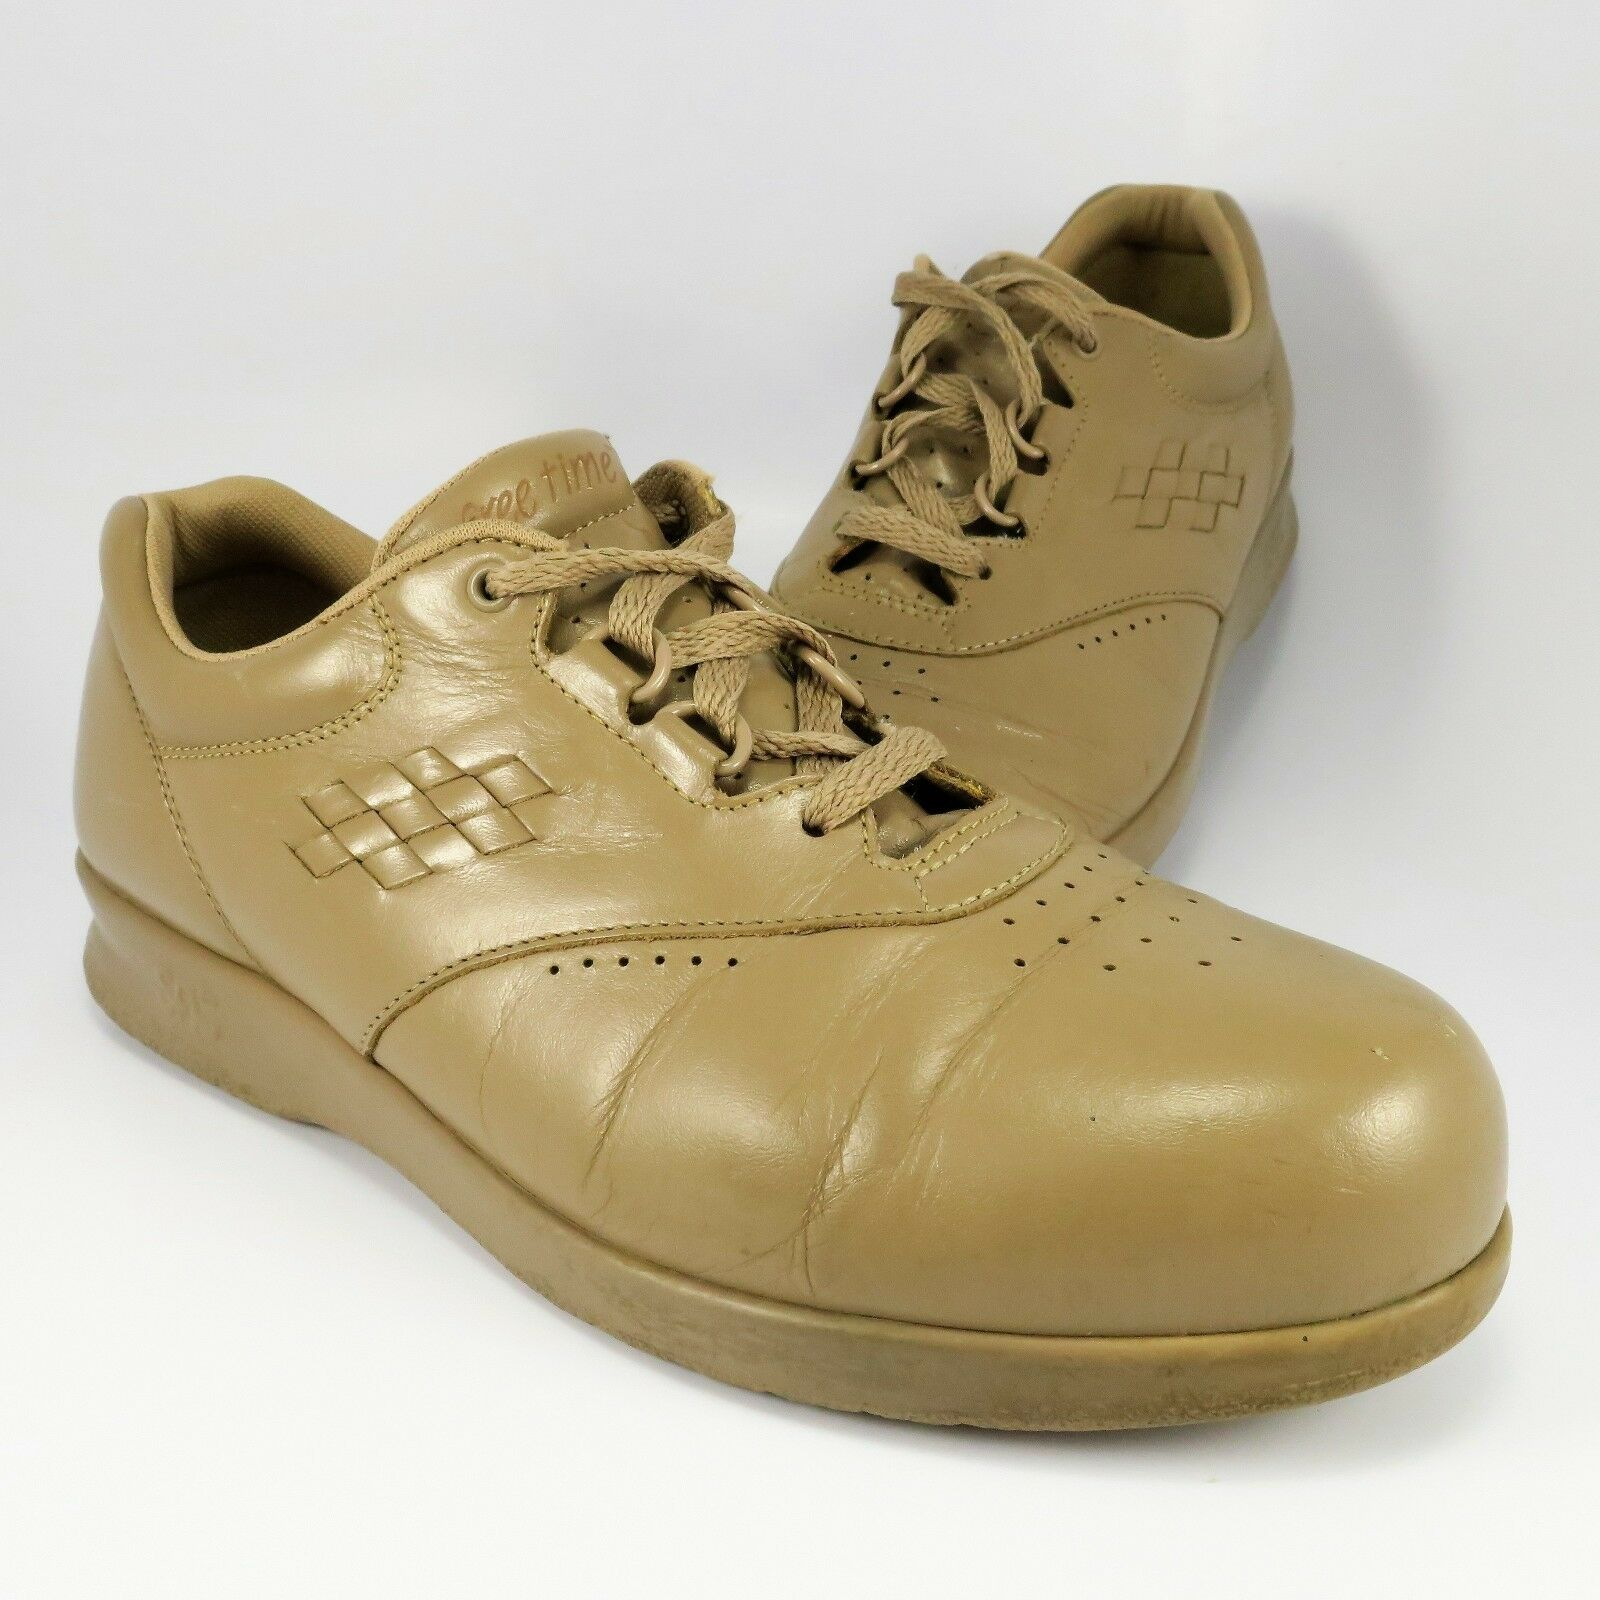 SAS Freetime shoes Womens Size 8.5M Tan Brown Leather Tripad Comfort Made in USA